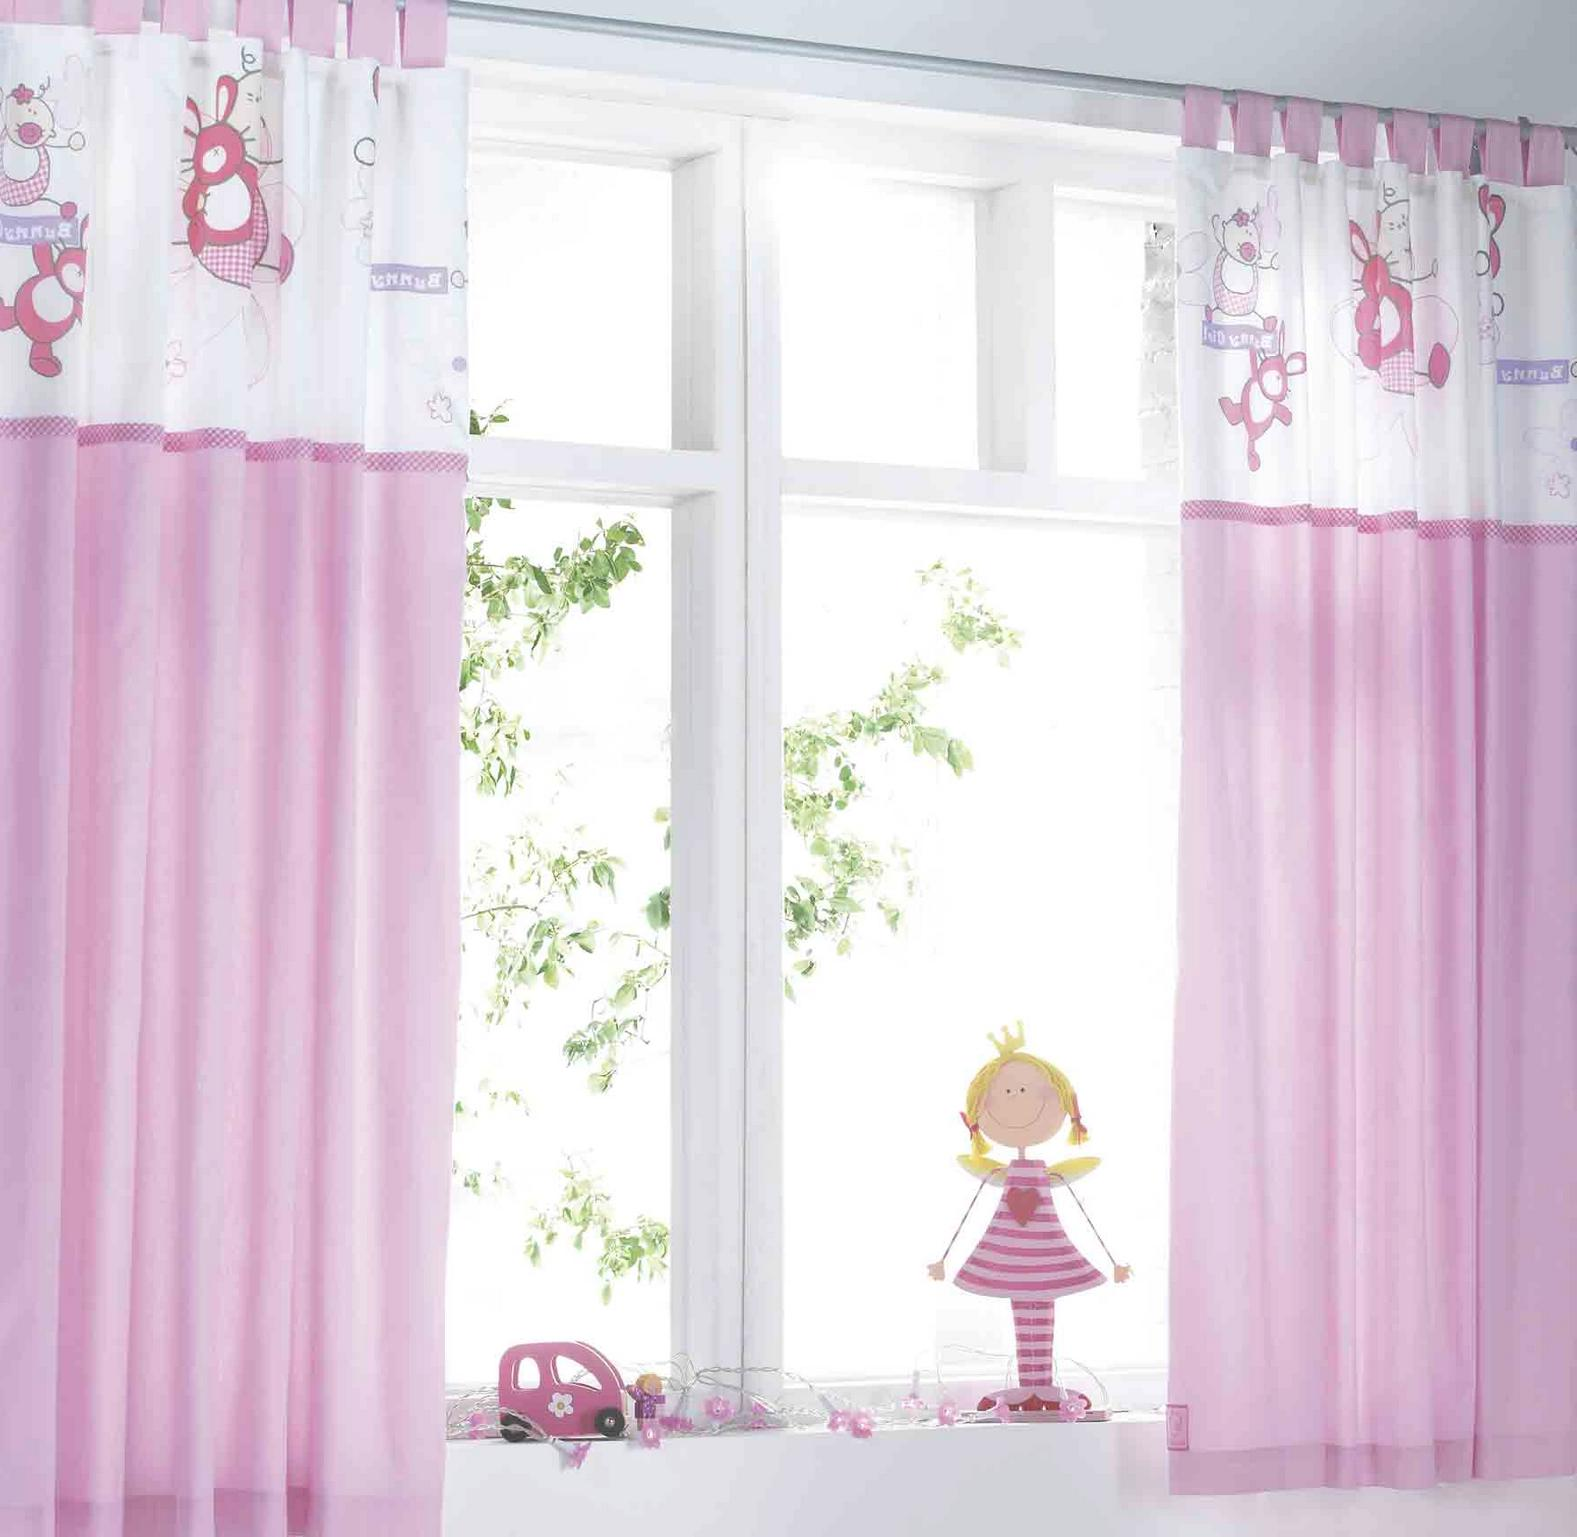 Cute Window Treatment: Kids Bedroom Curtains